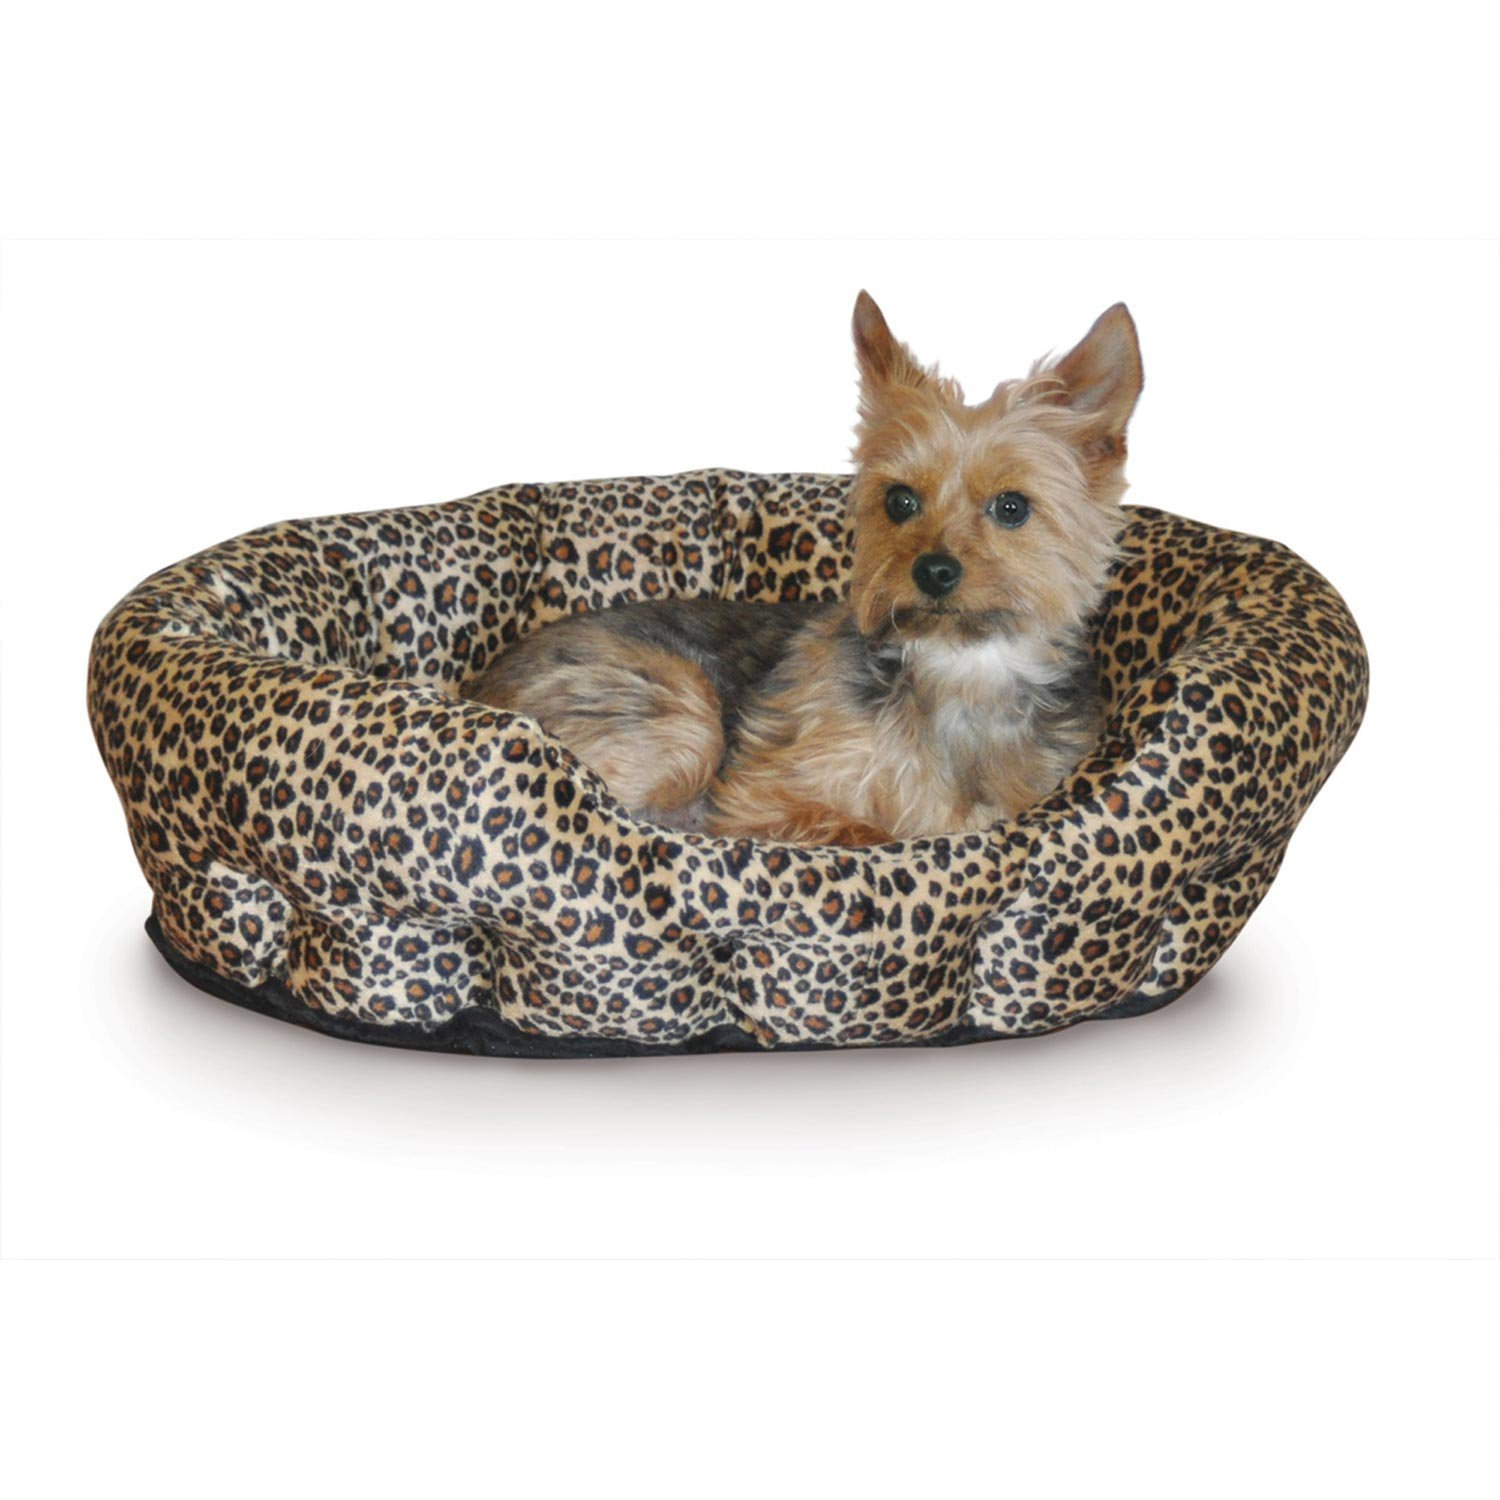 KH SelfWarming Nuzzle Nest Dog Bed in Brown Leopard 19 L x 19 W Small